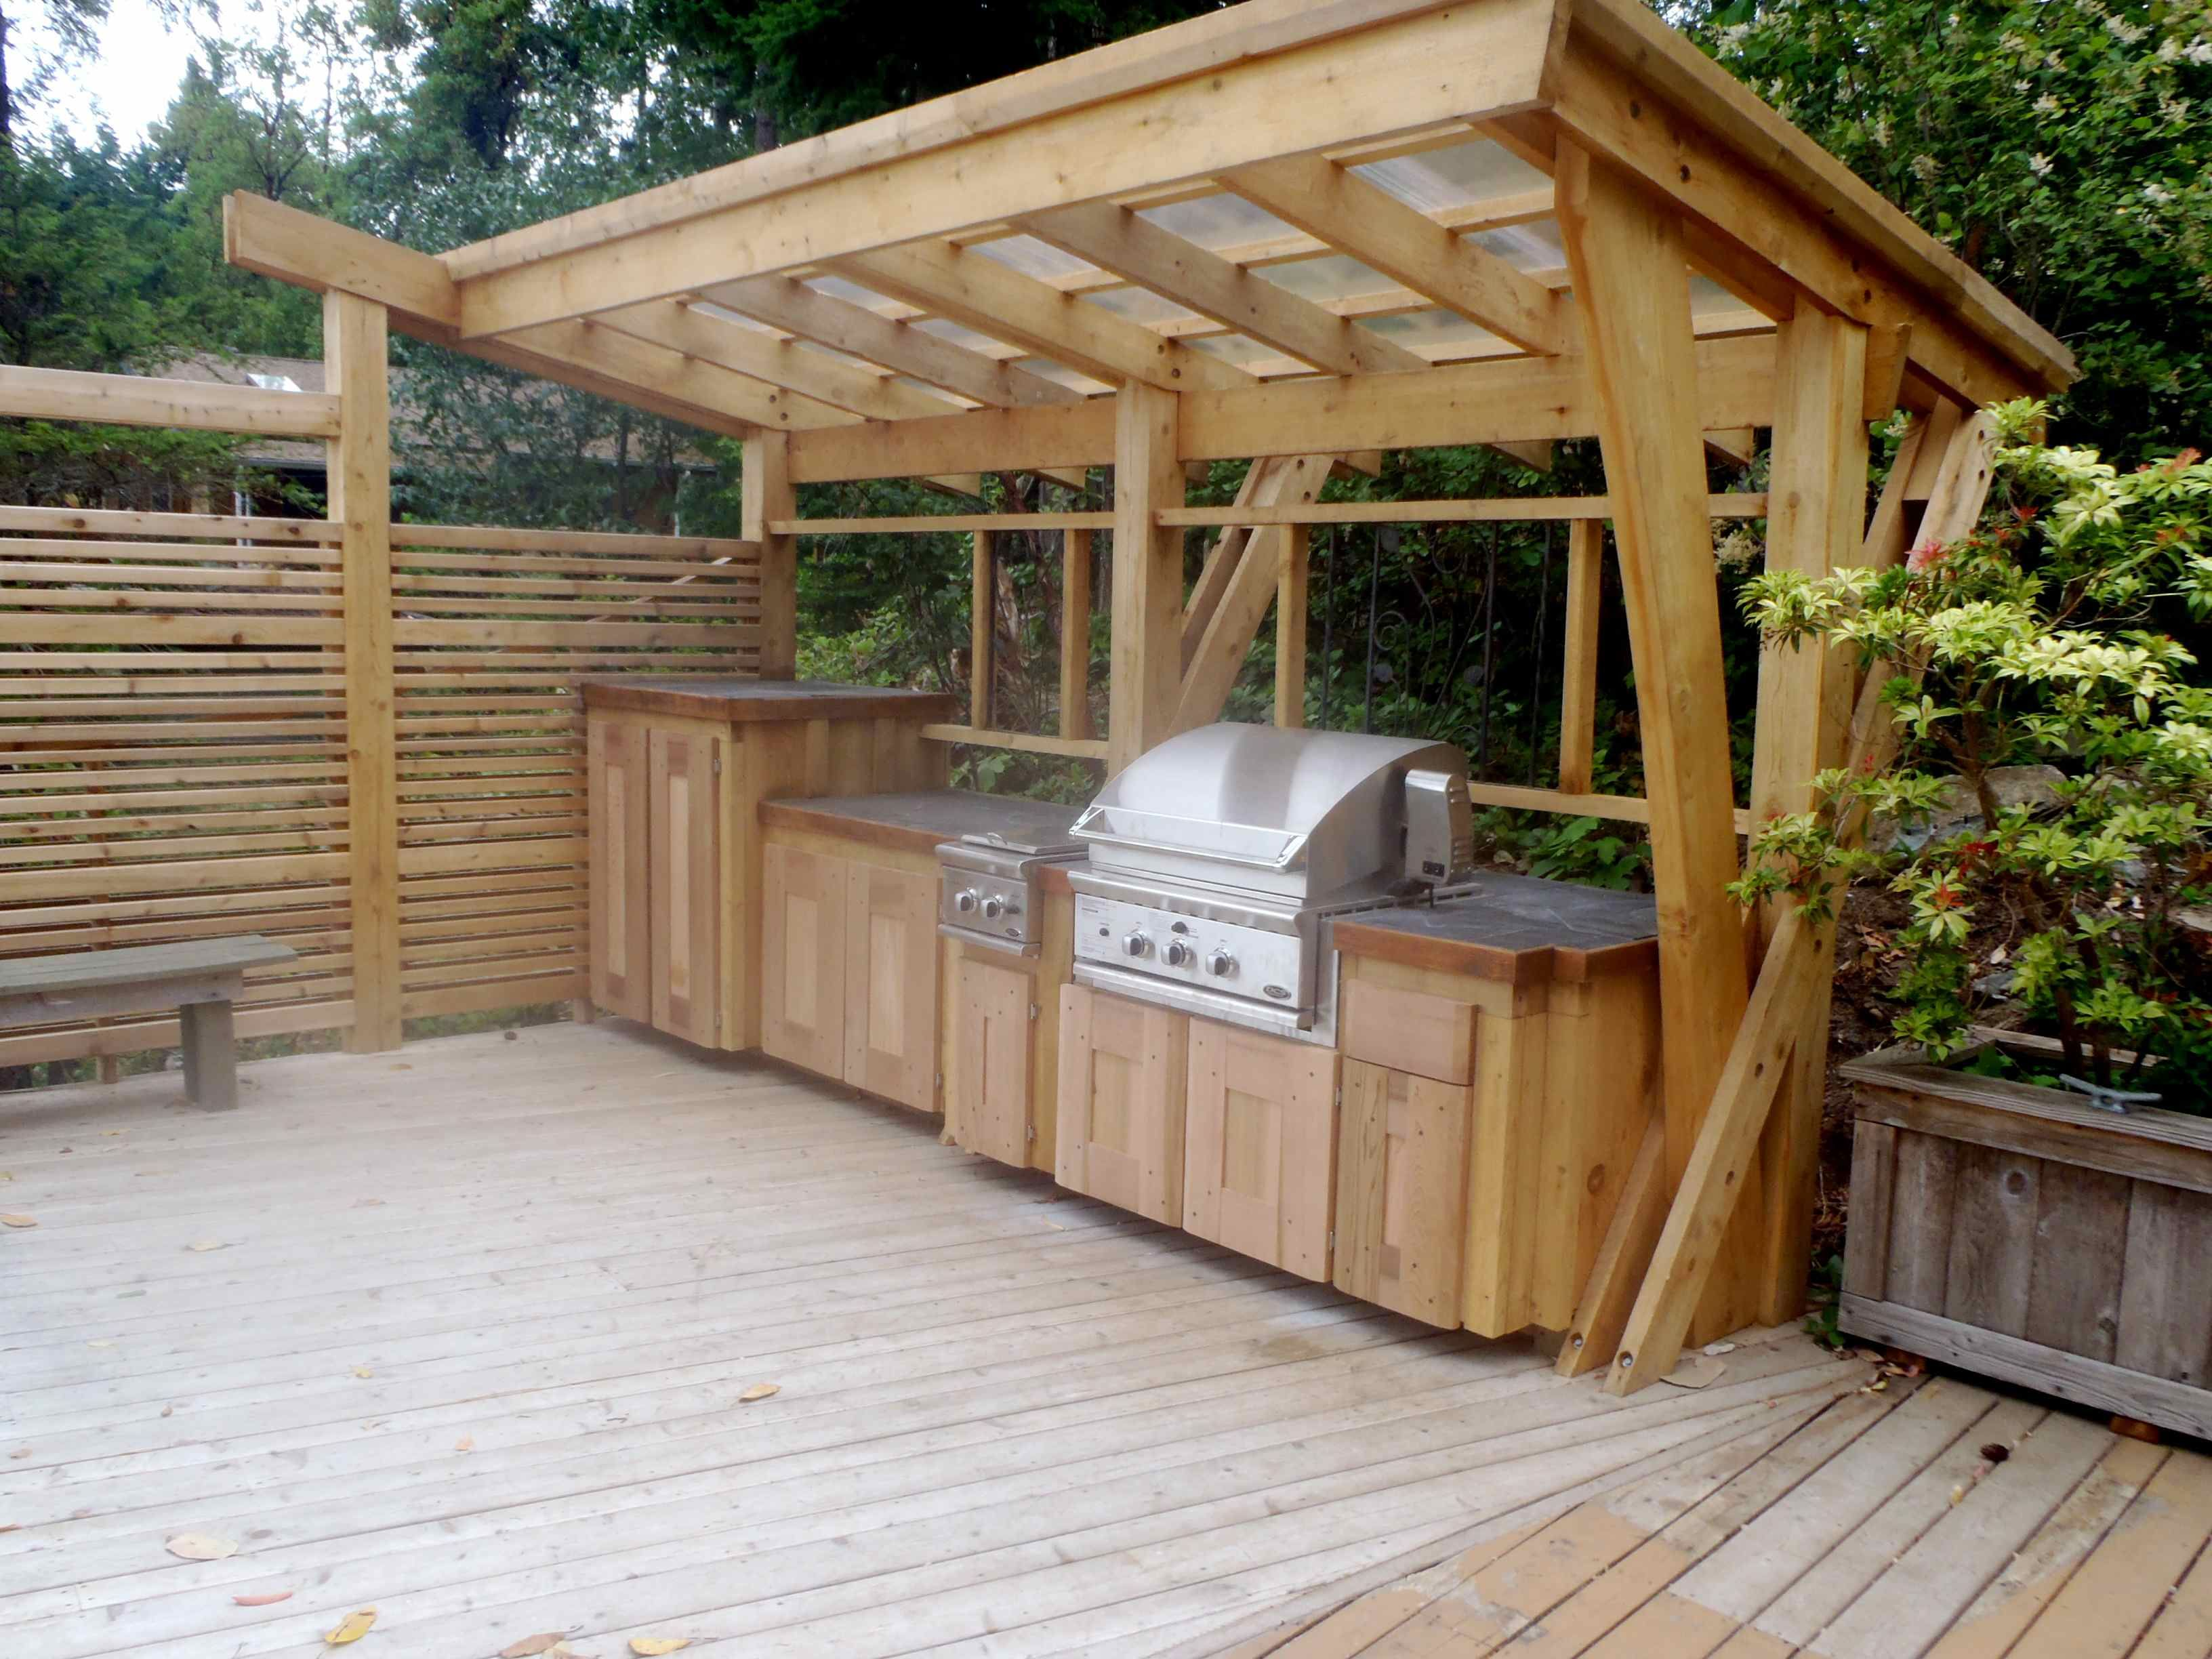 Outdoor kitchen cedar bbq cover outdoor for Backyard kitchen design ideas